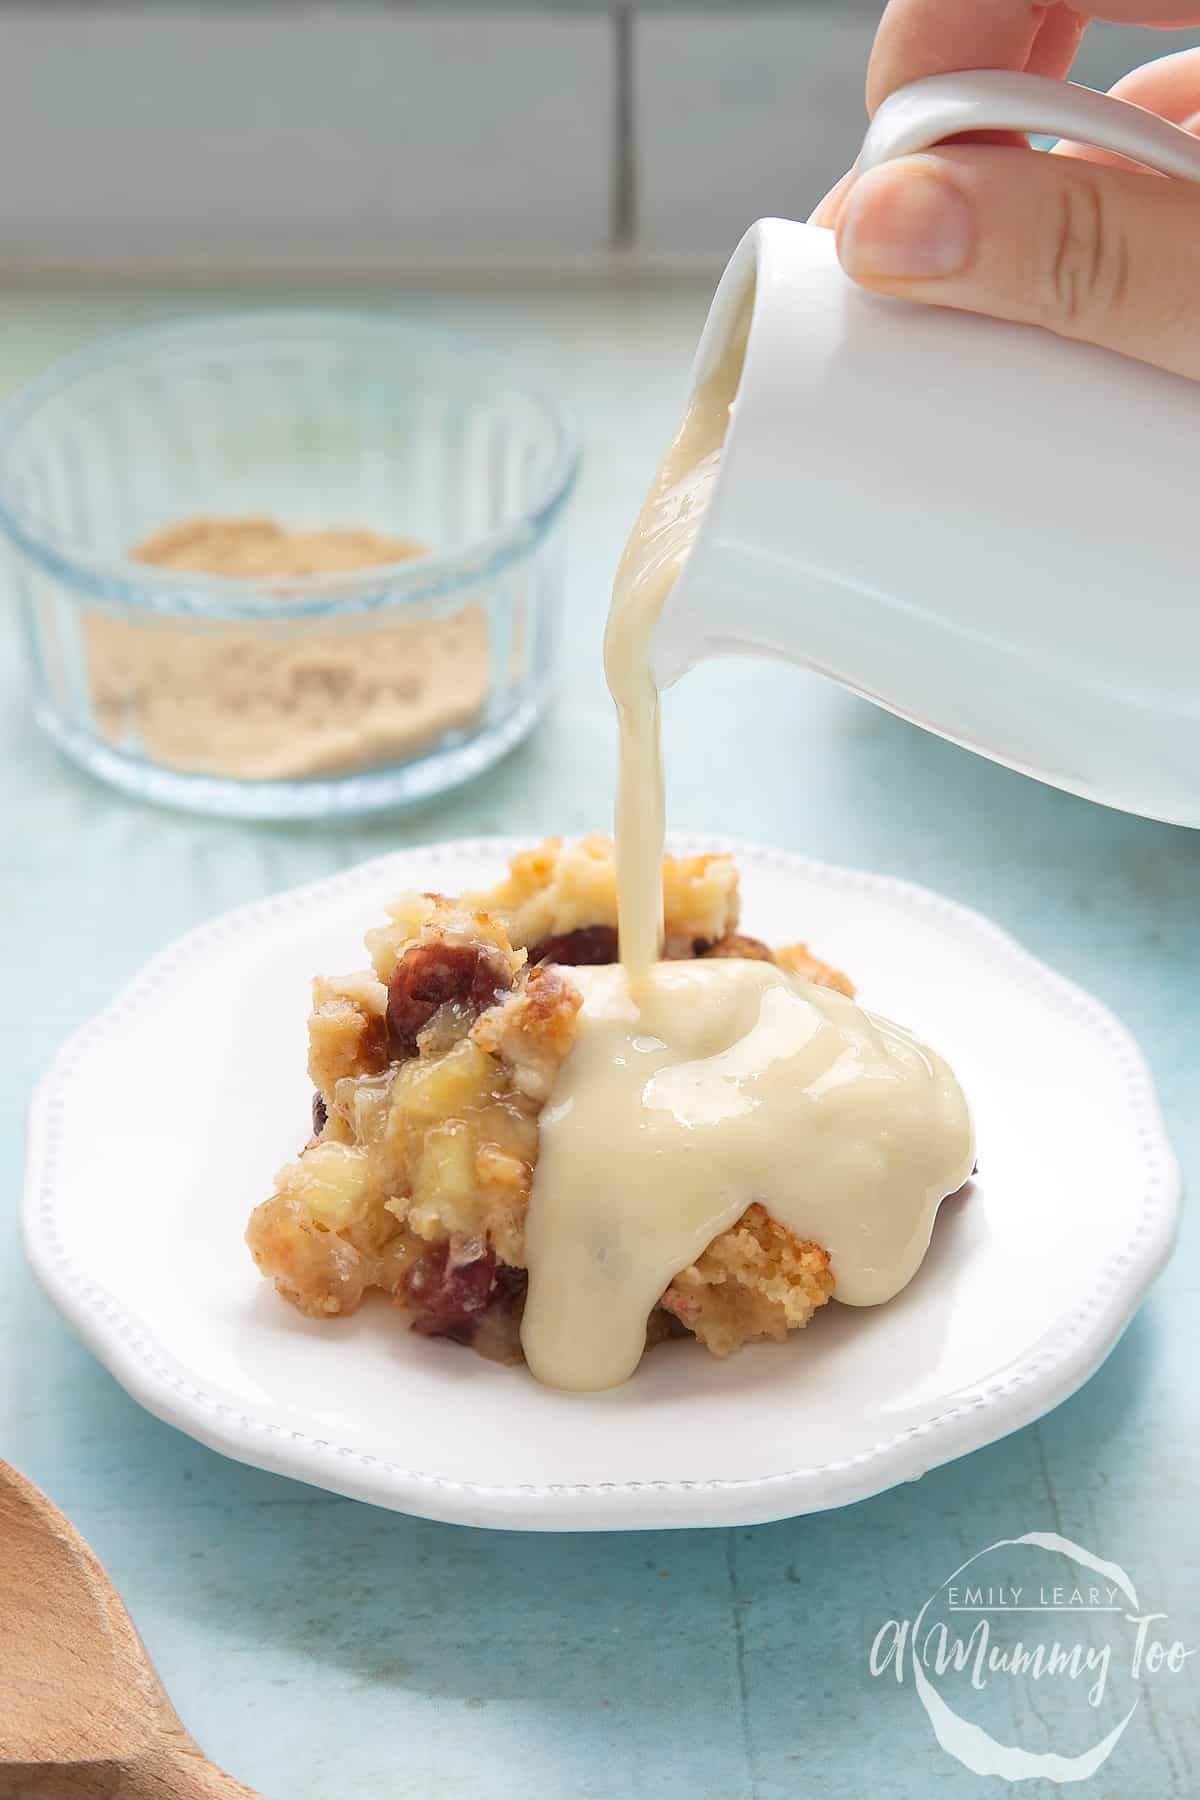 A berry crumble on a white plate covered with vegan custard being poured from a white jug.